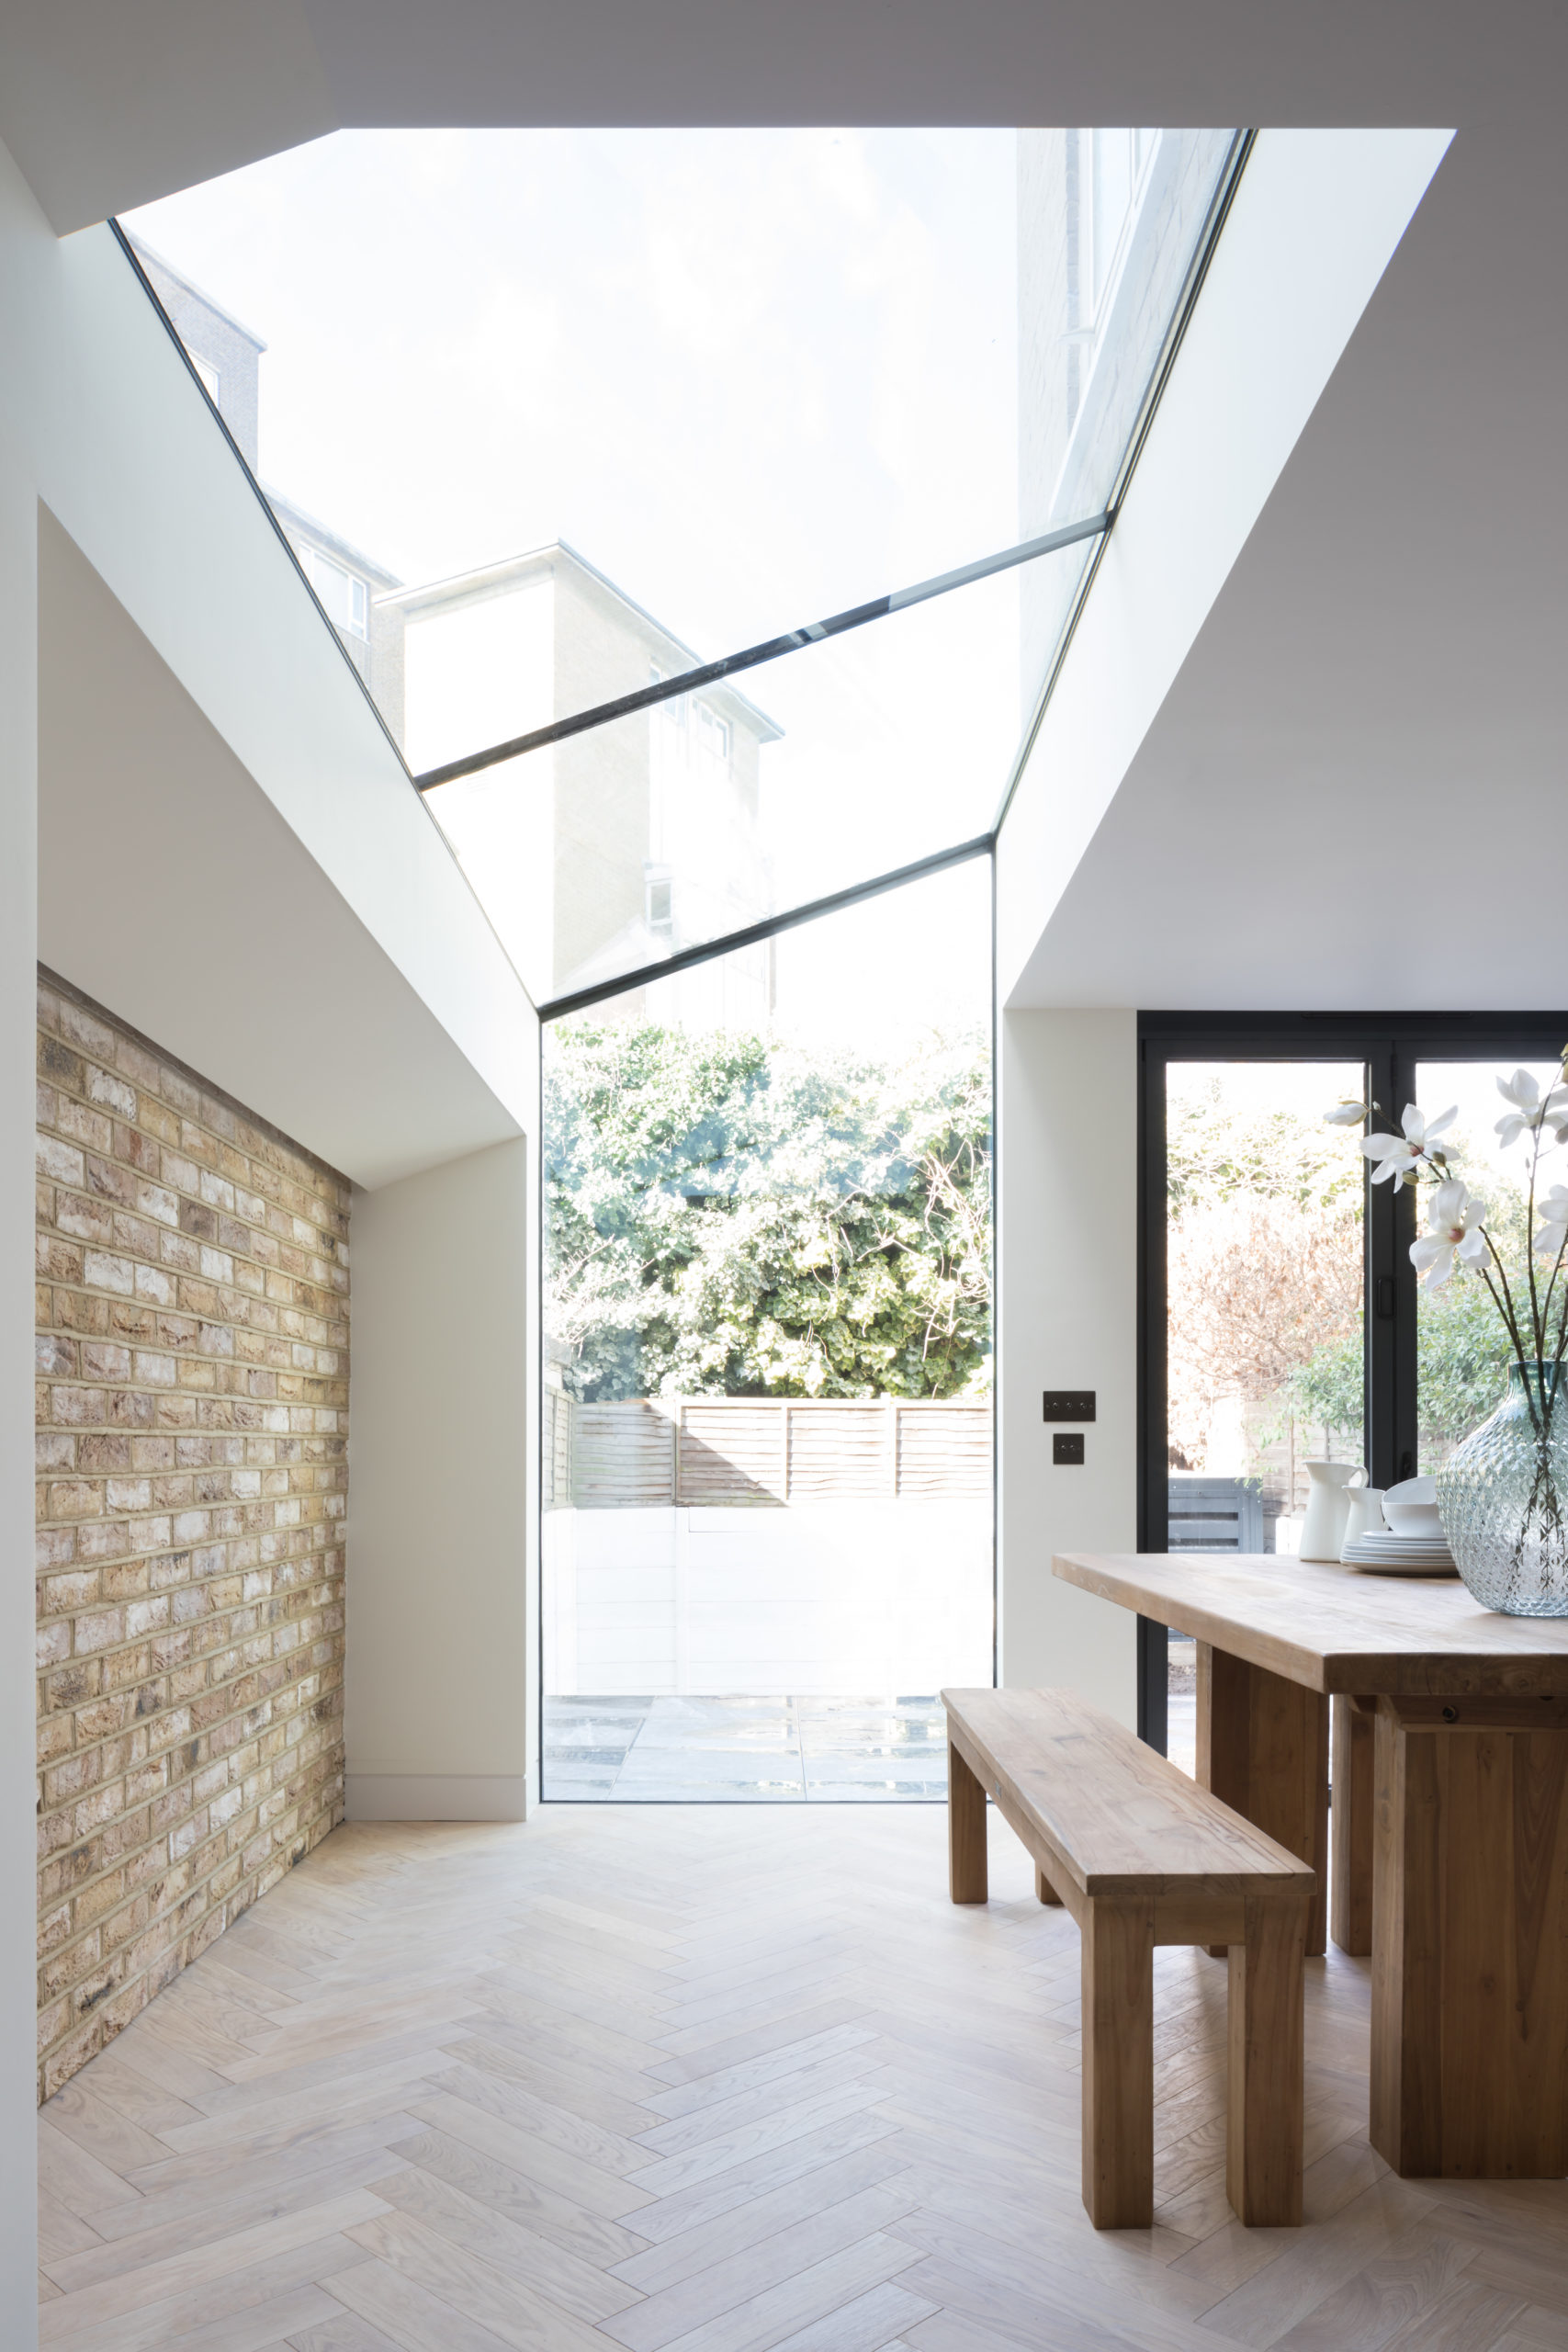 Architect At Rjh Architecture In London Uk